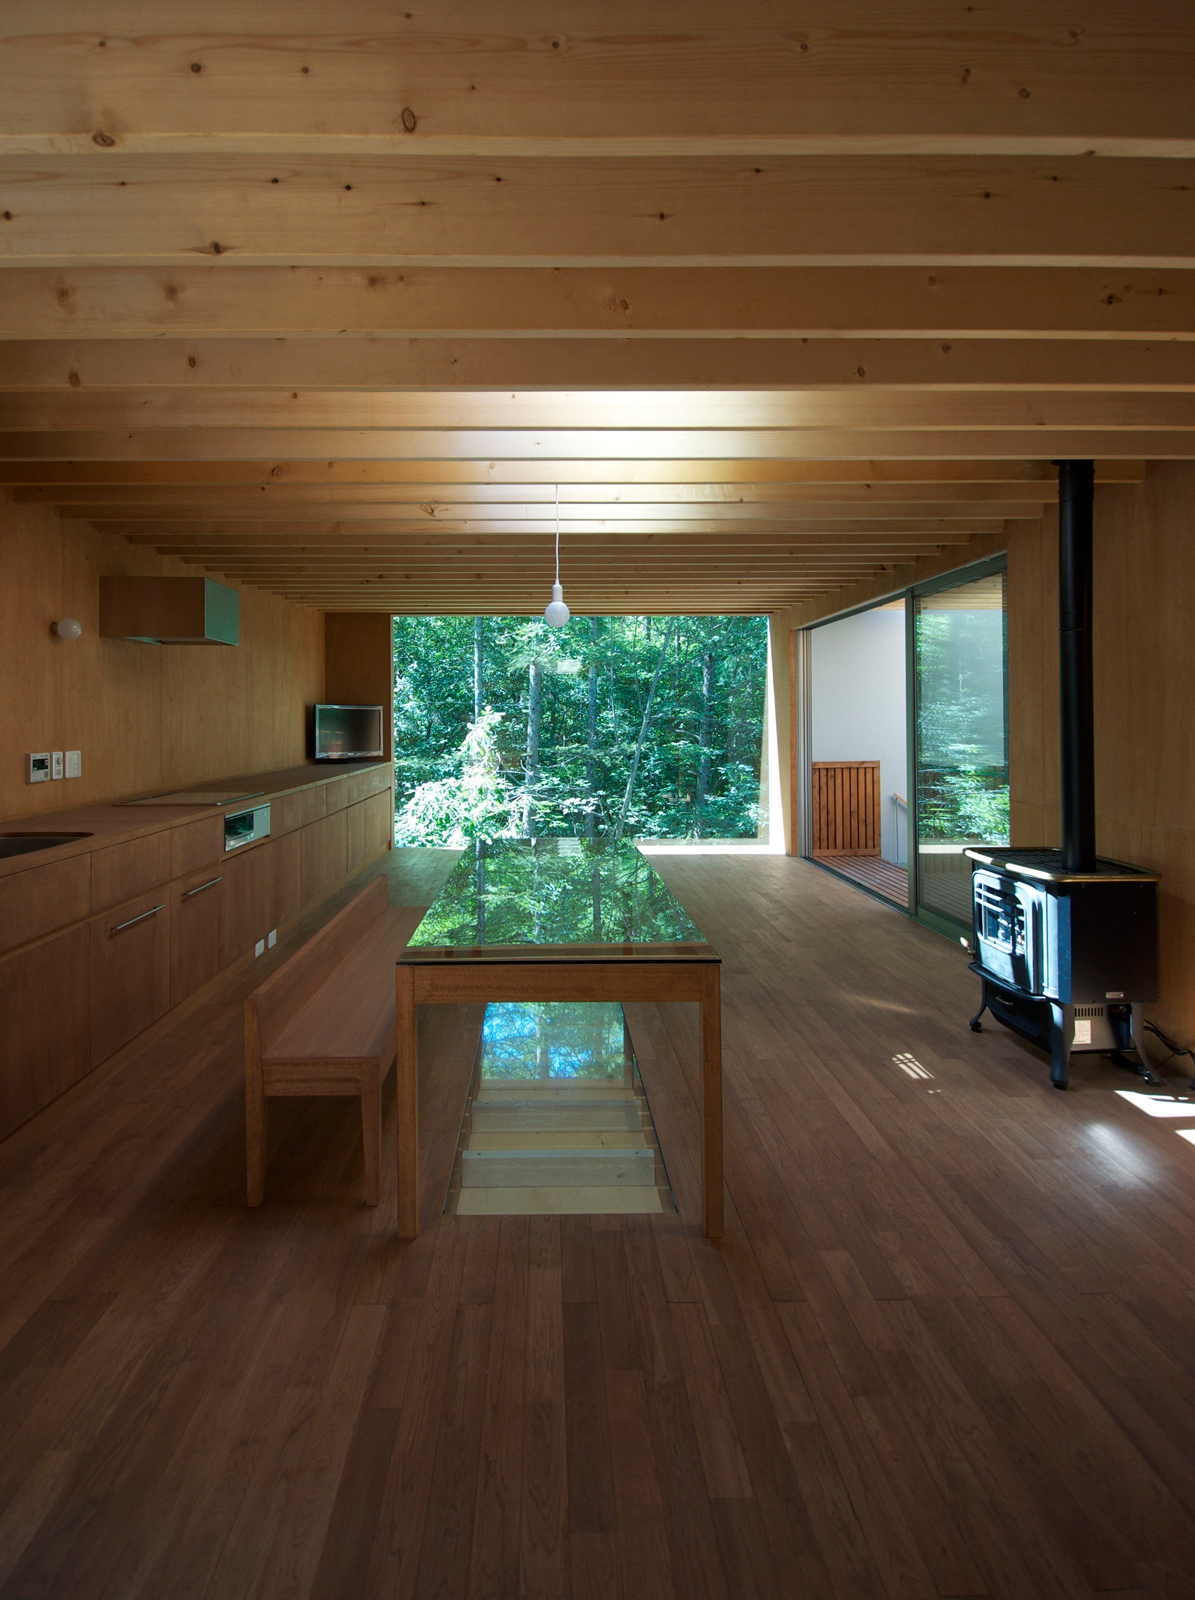 The upper floor is sparsely decorated and the height of the room is just under six feet. Because of the low ceiling height, Hasegawa designed a table and selected chairs with an equally low height, 660 mm and 360 mm respectively (about two feet and one fo